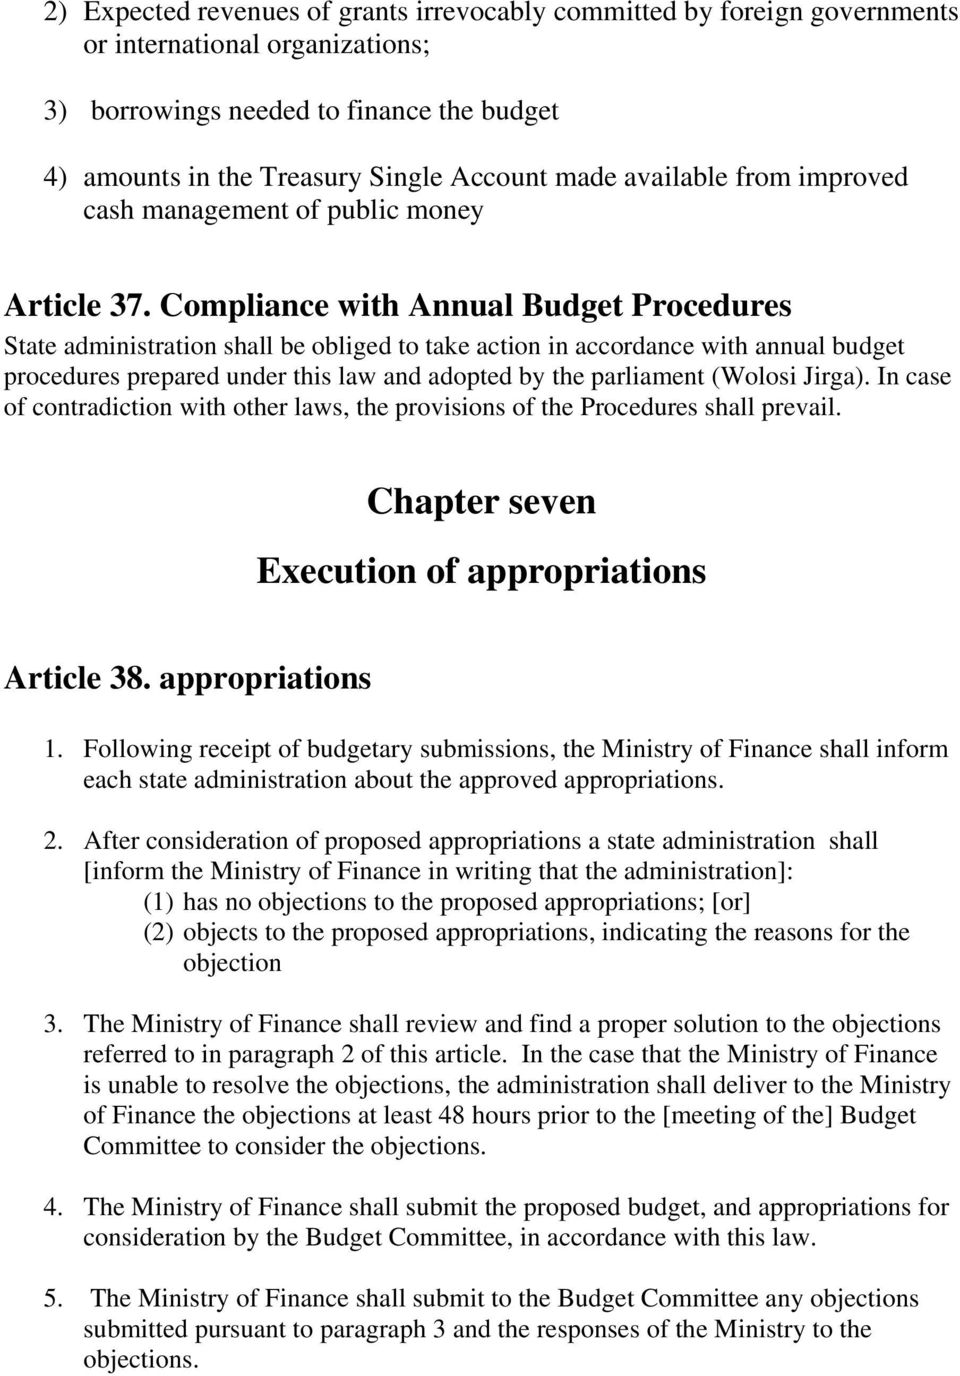 Compliance with Annual Budget Procedures State administration shall be obliged to take action in accordance with annual budget procedures prepared under this law and adopted by the parliament (Wolosi